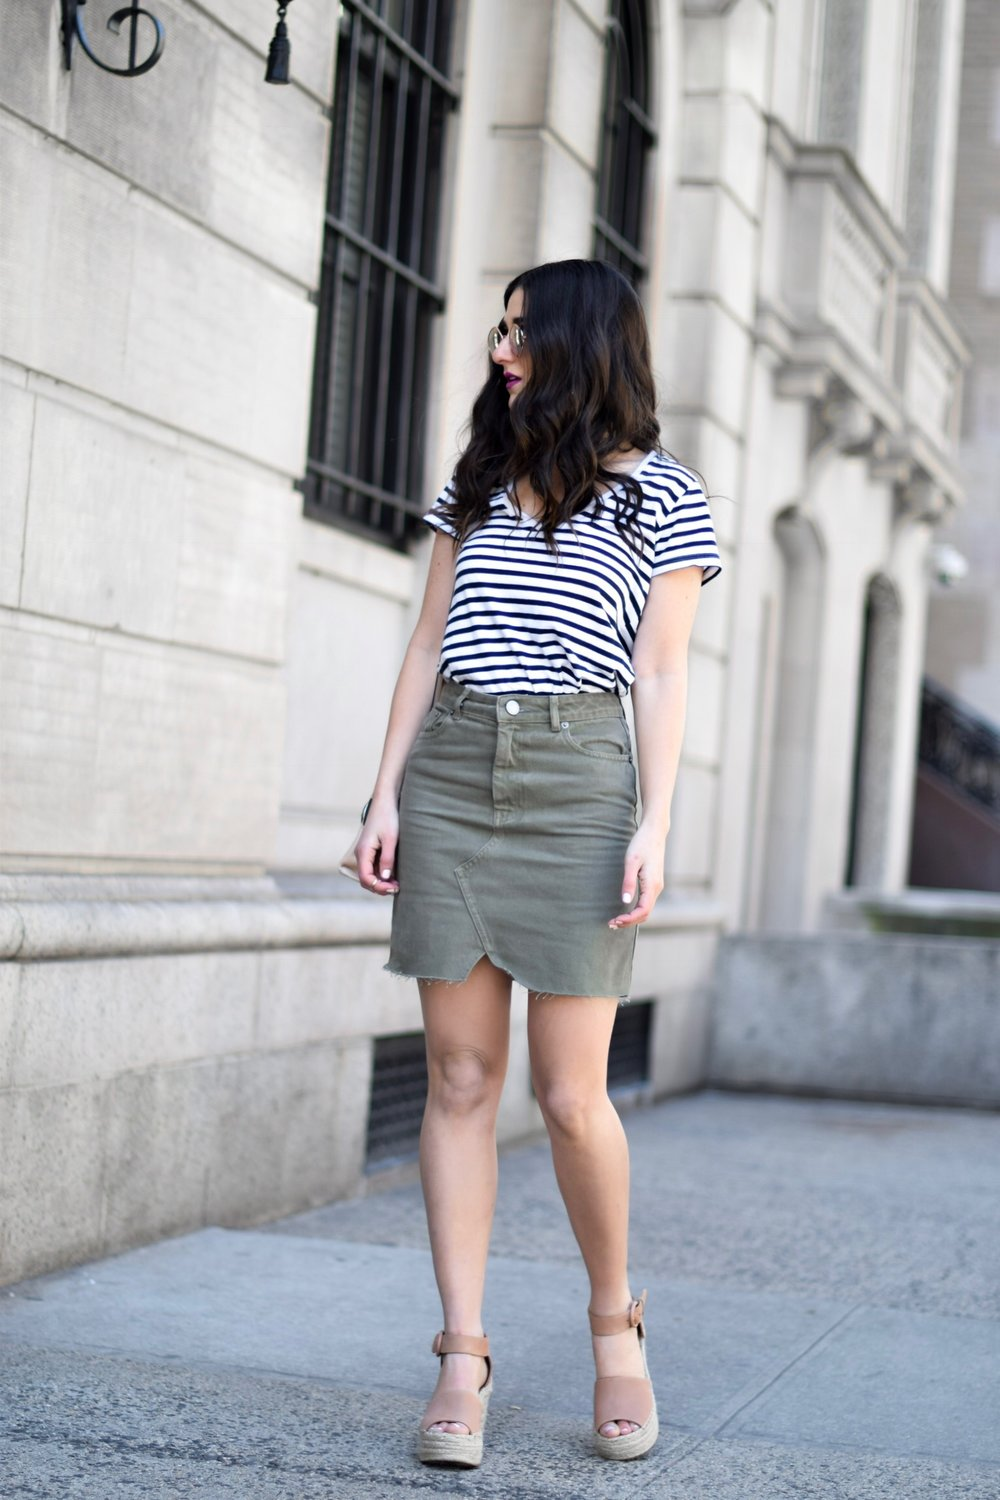 Striped Tee Khaki Skirt ASOS Sunnies Esther Santer Fashion Blog NYC Street Style Blogger Outfit OOTD Trendy Summer Sunglasses Shopping Hair Girl Women Espadrille Wedges Henri Bendel Purse Bag Accessories Rings Gold  Choker Necklace Green ASOS Zara Buy.jpg